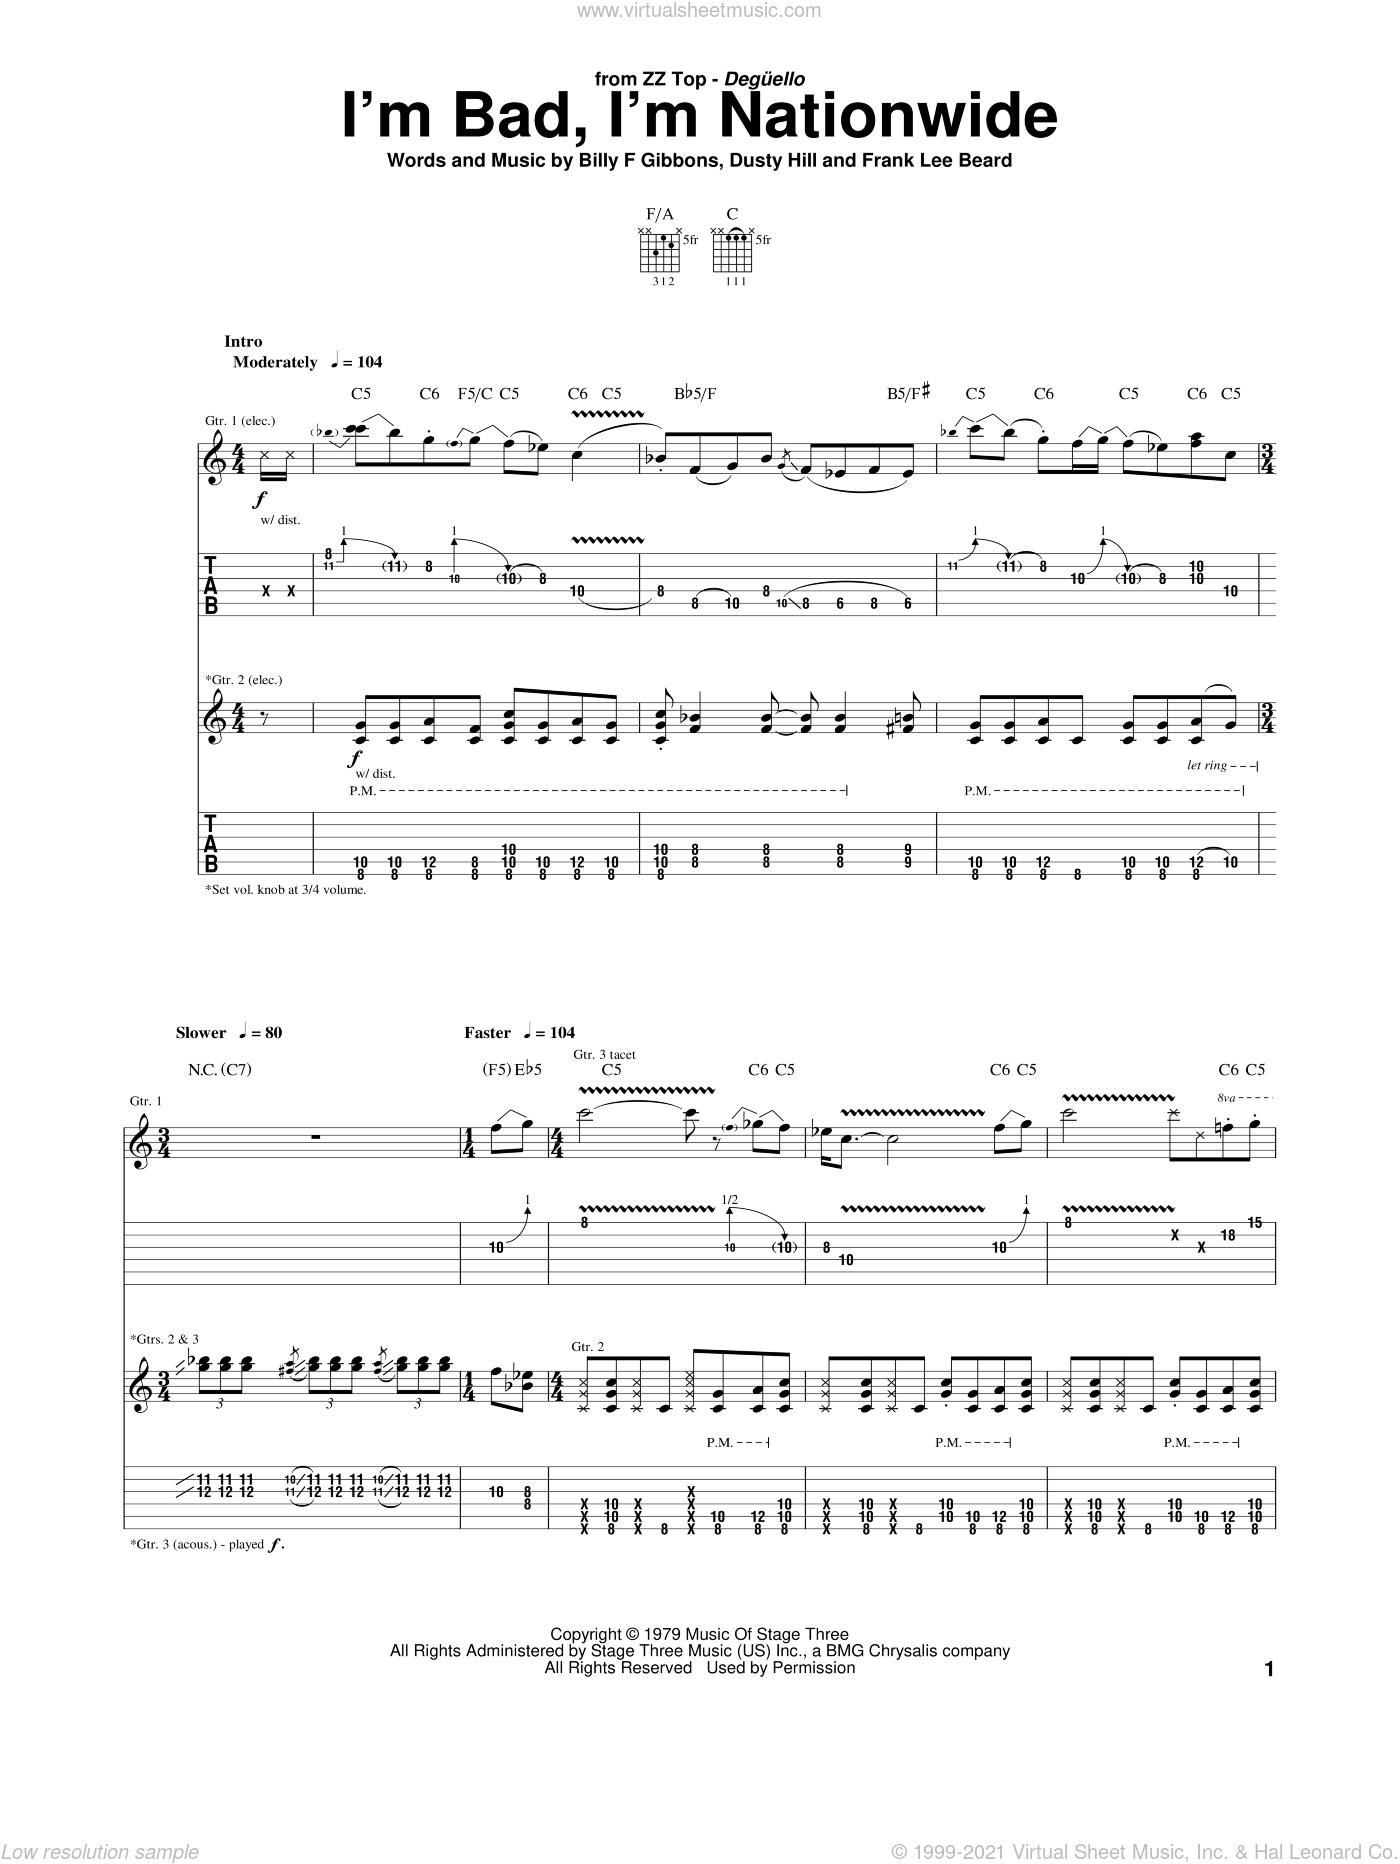 I'm Bad, I'm Nationwide sheet music for guitar solo (tablature) by Frank Beard